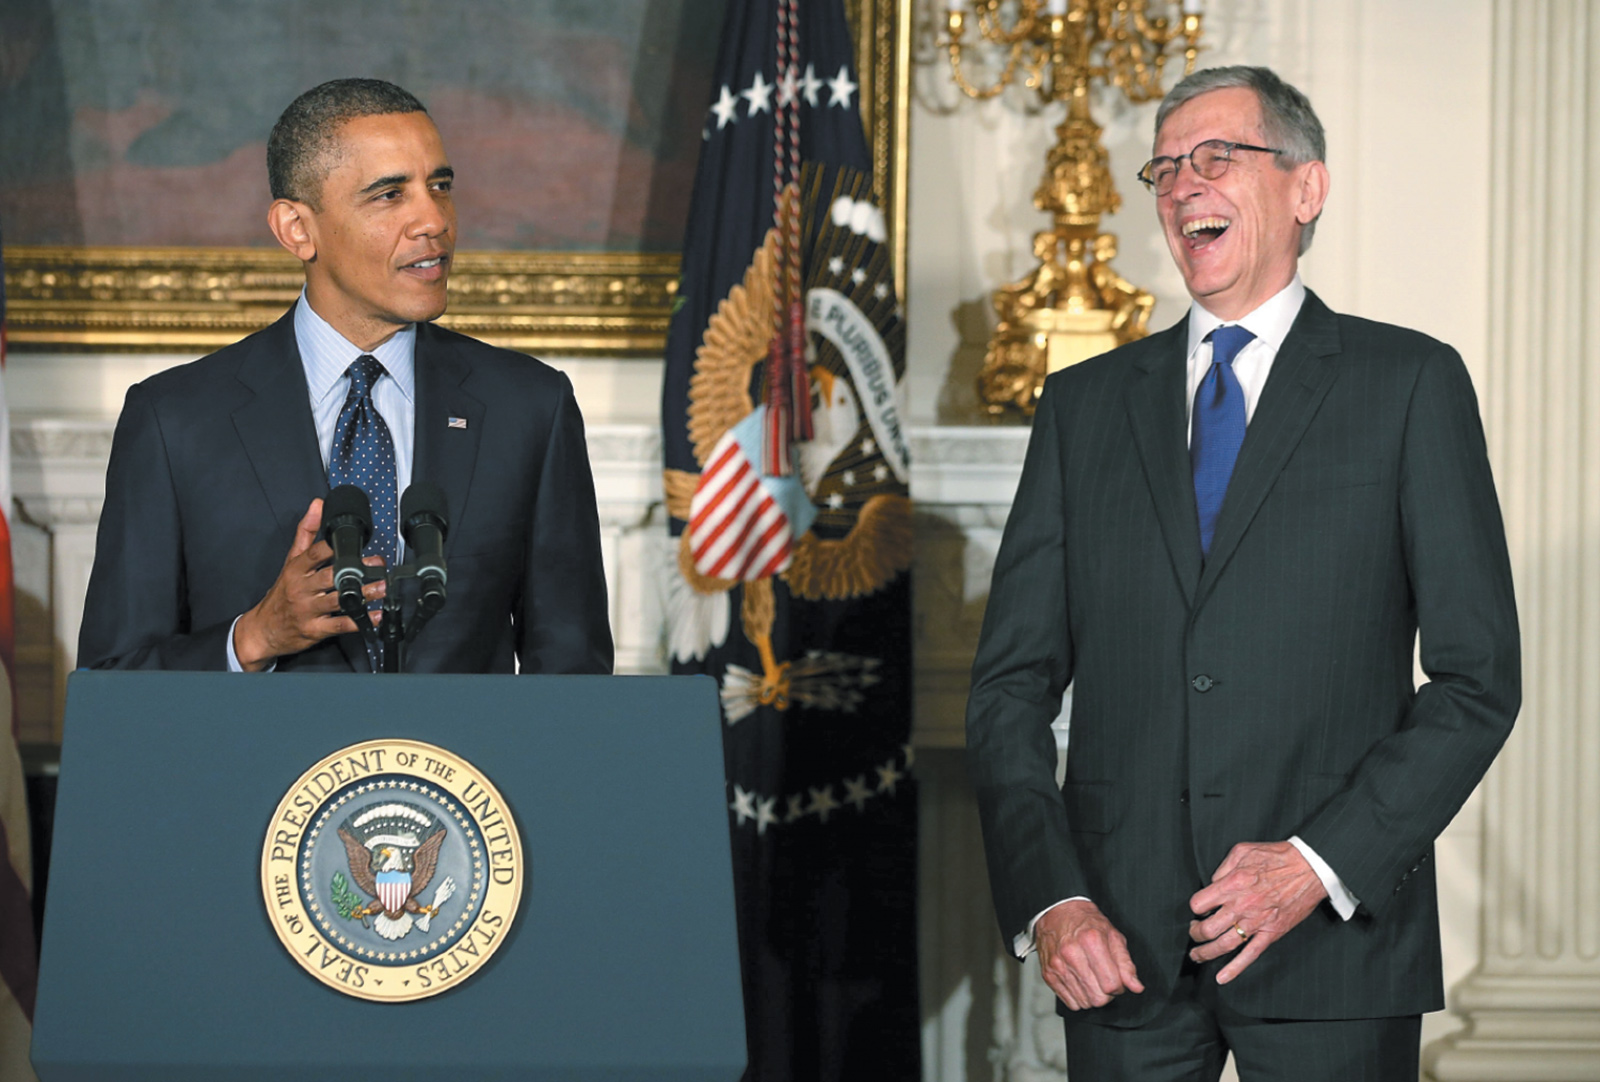 President Obama announcing his nomination of the telecom industry lobbyist Tom Wheeler as chairman of the Federal Communications Commission, May 2013